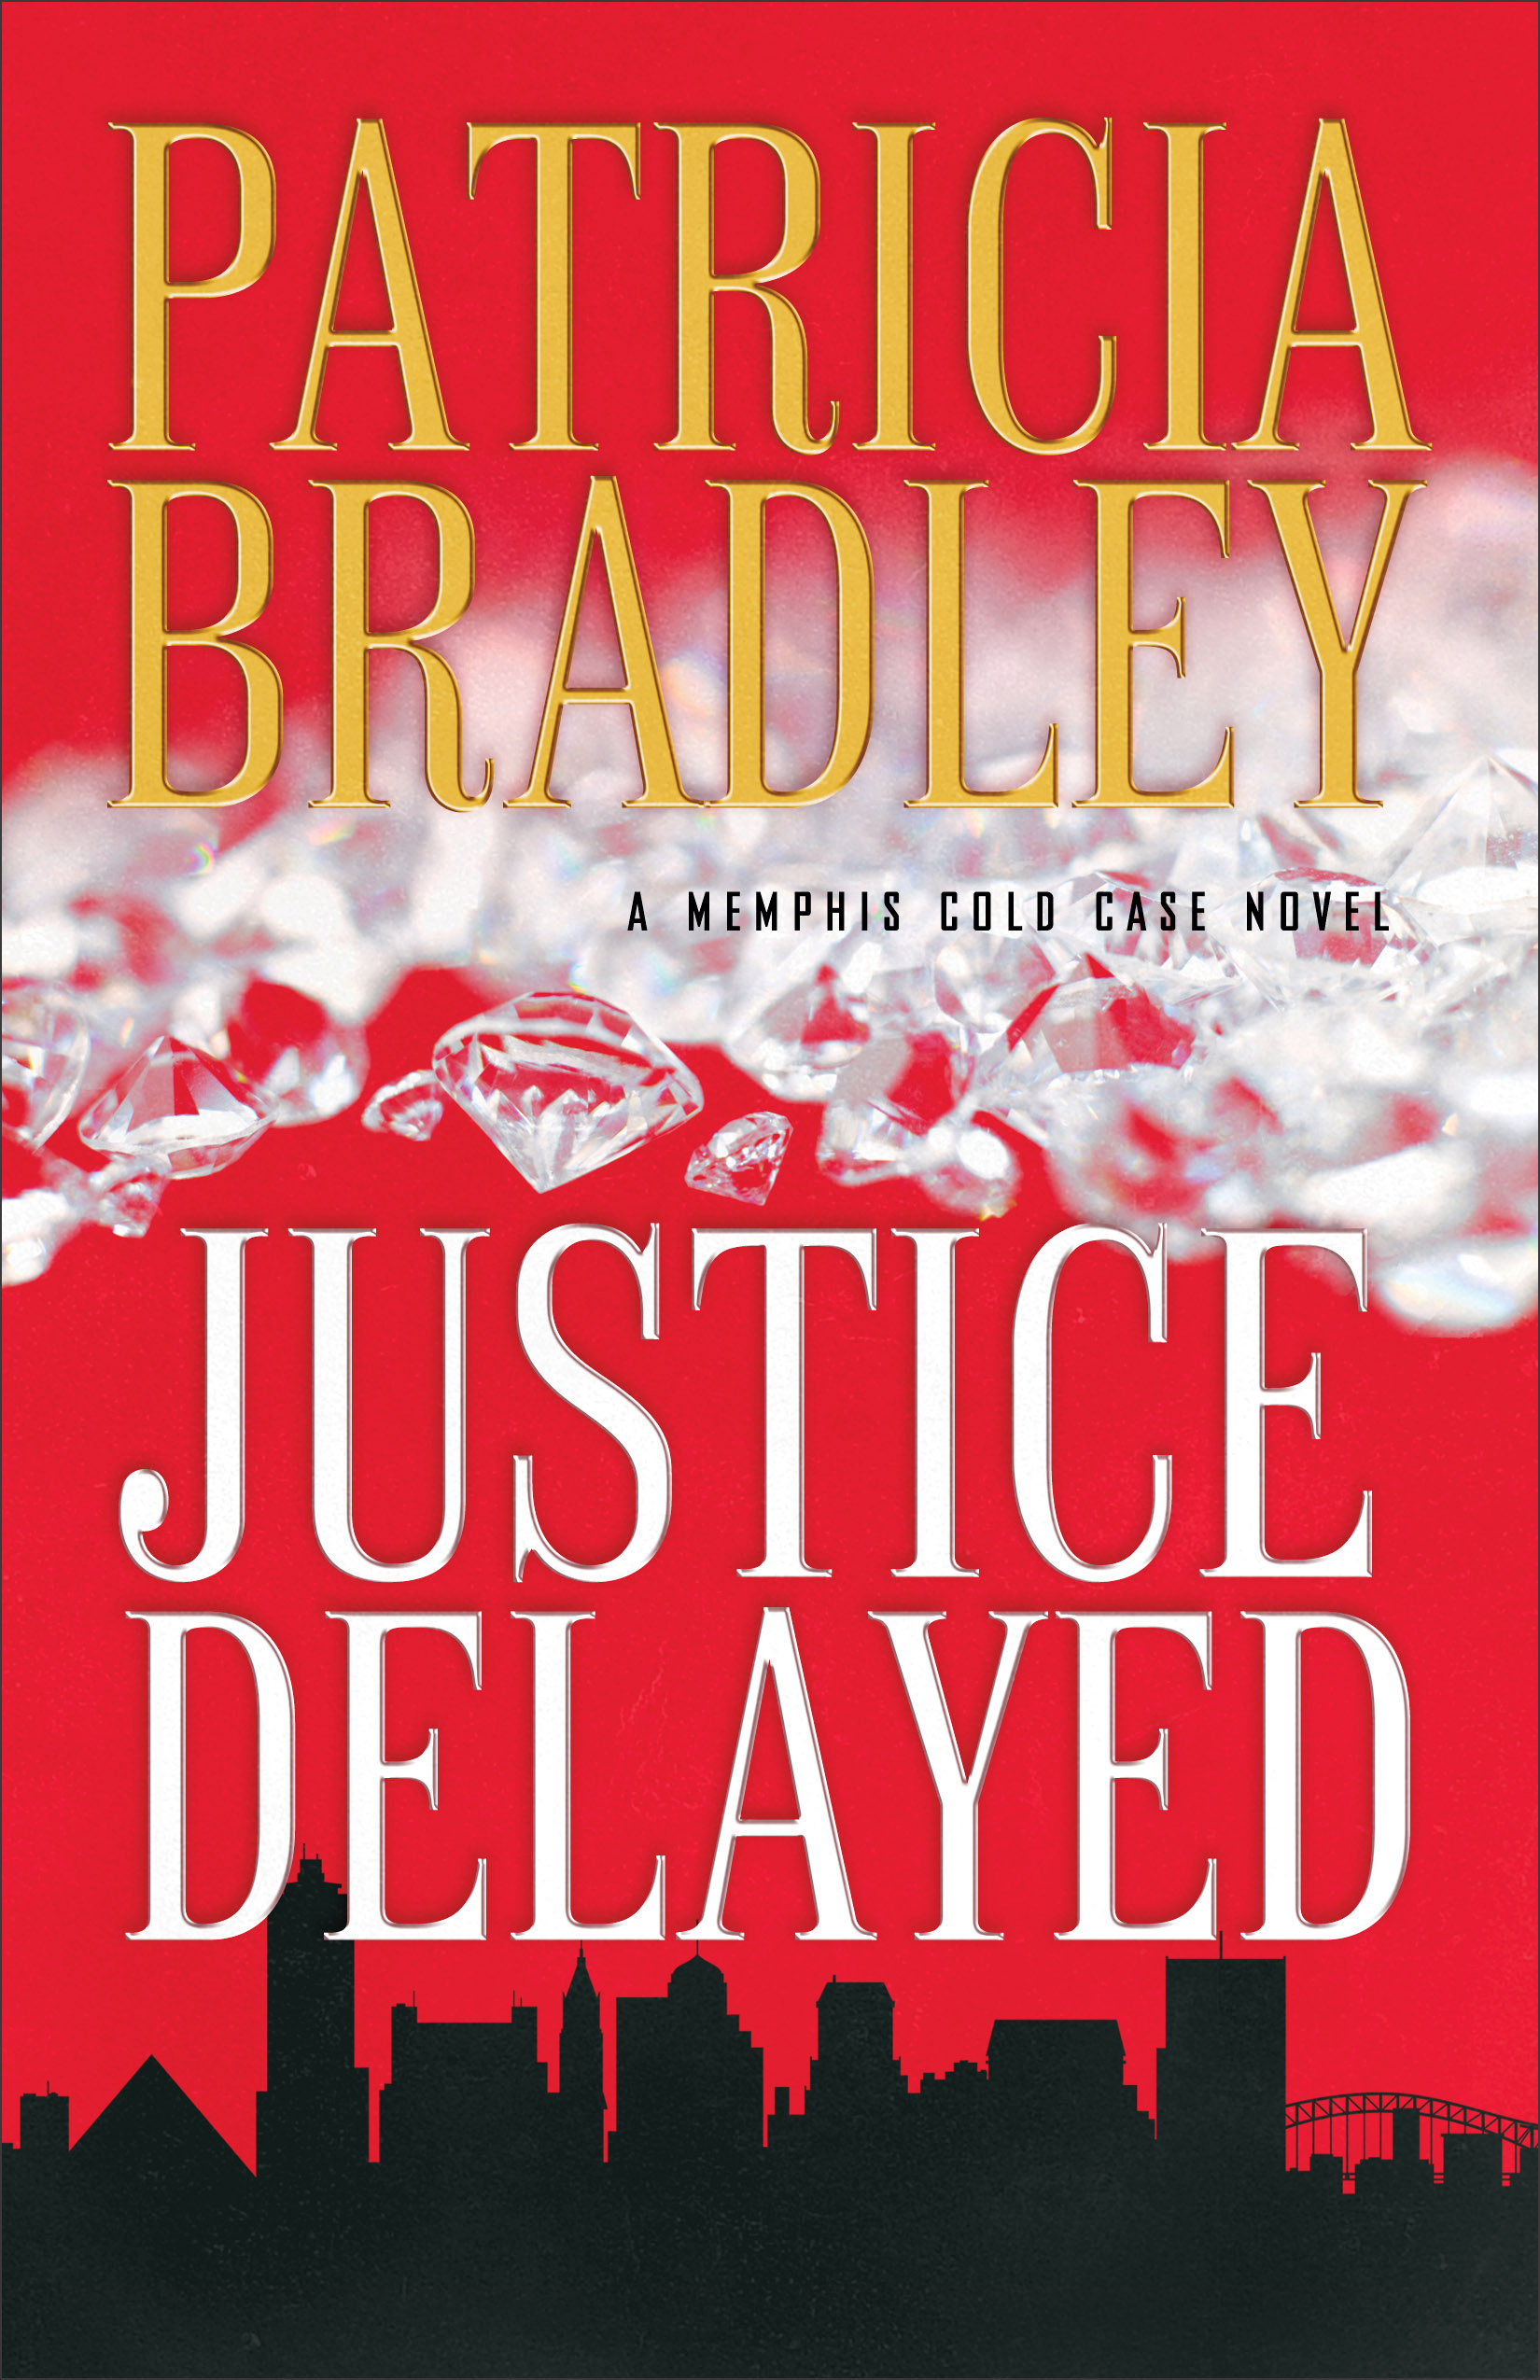 Book review of Justice Delayed by Patricia Bradley (Revell) by papertapepins